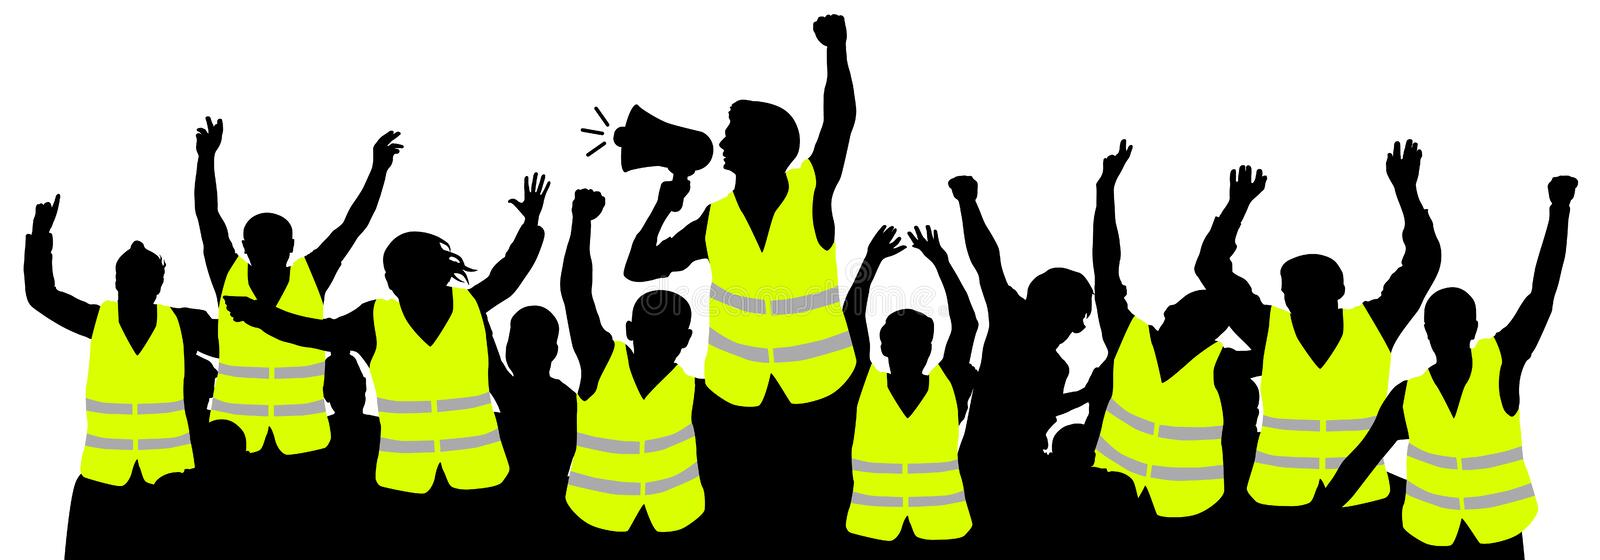 Protest movement of yellow vests. Crowd people silhouette vector stock illustration